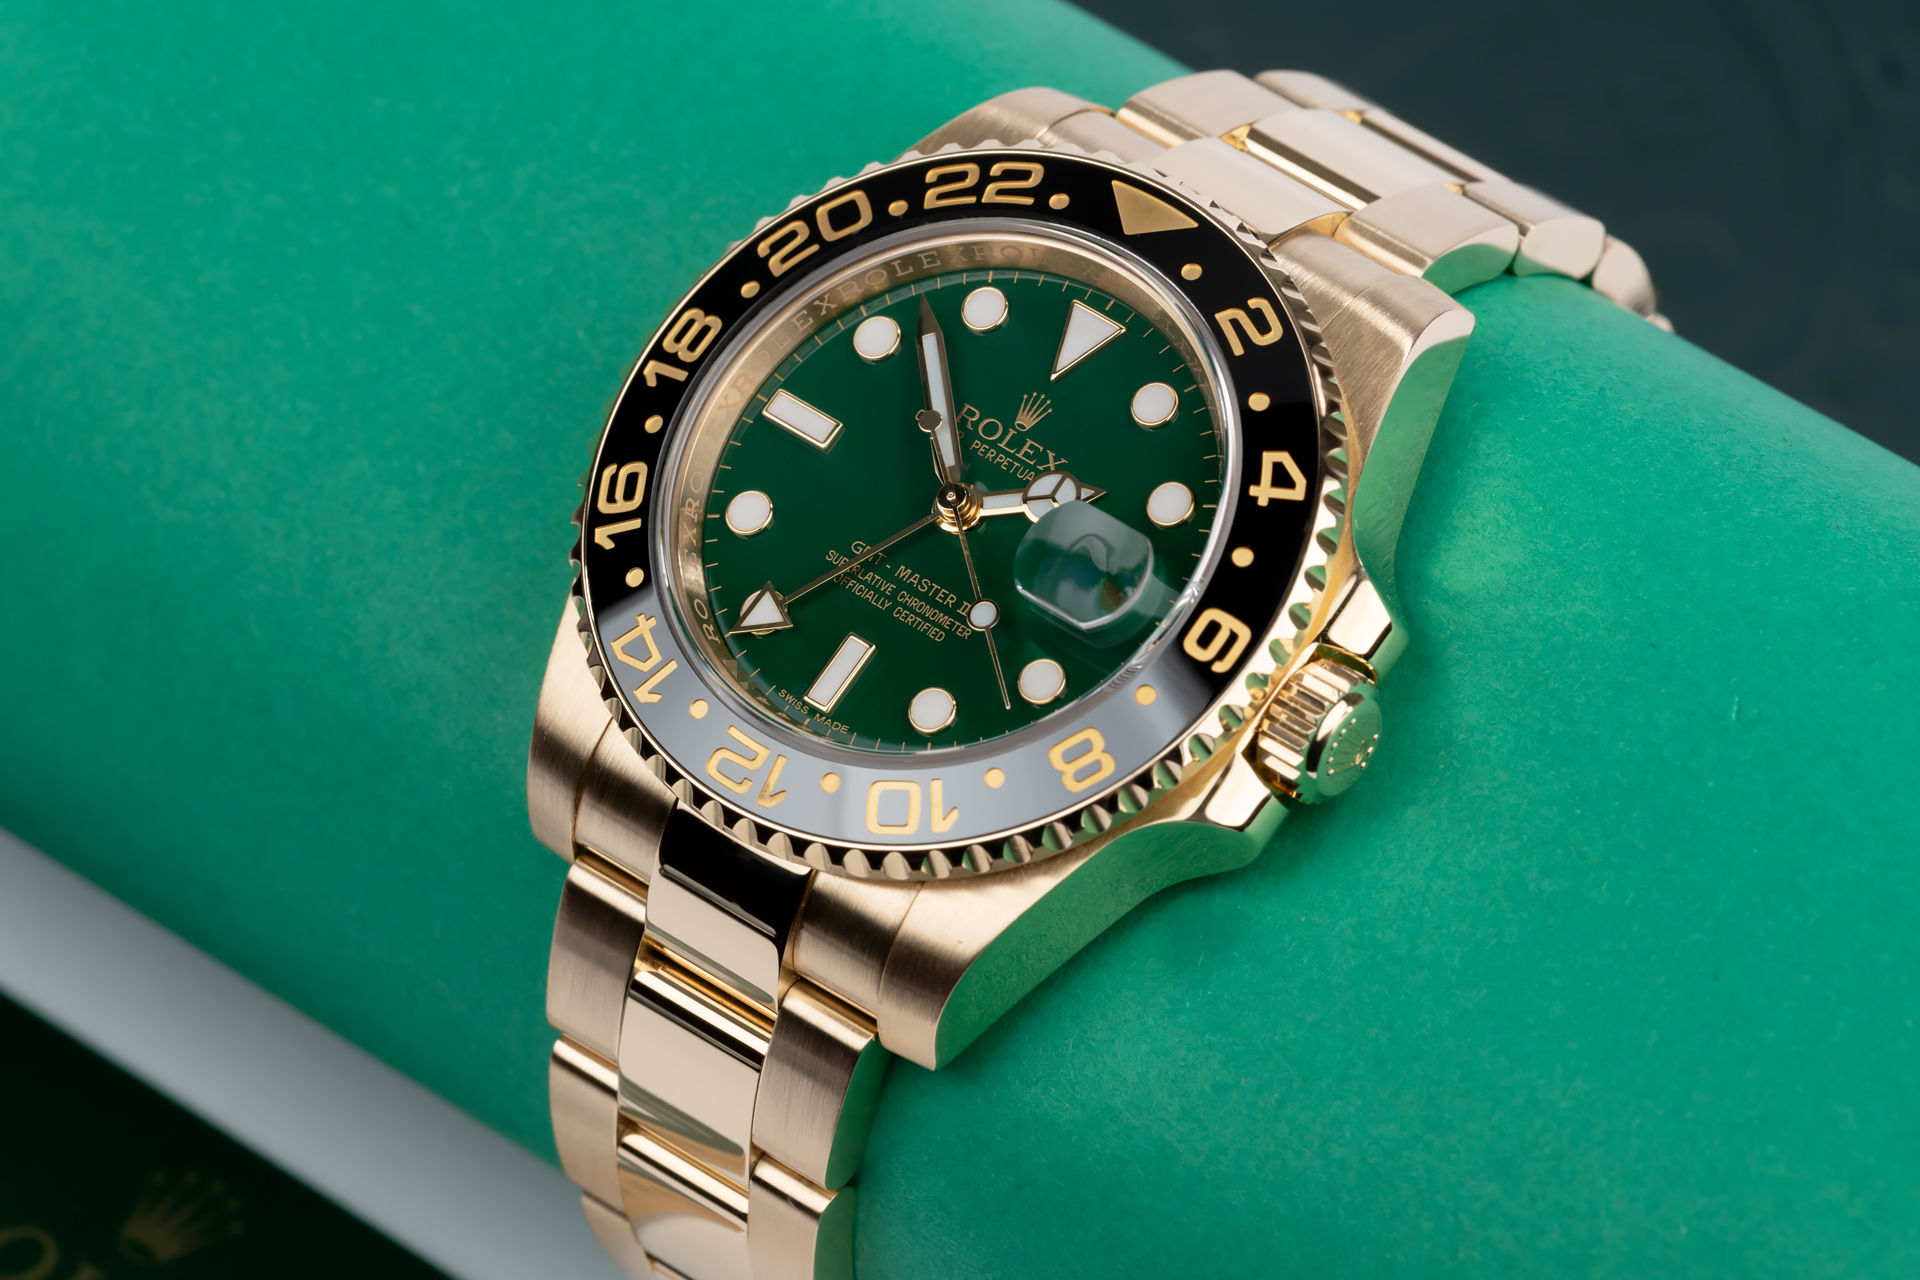 ref 116718LN | Solid Gold 'Full Set' | Rolex GMT-Master II